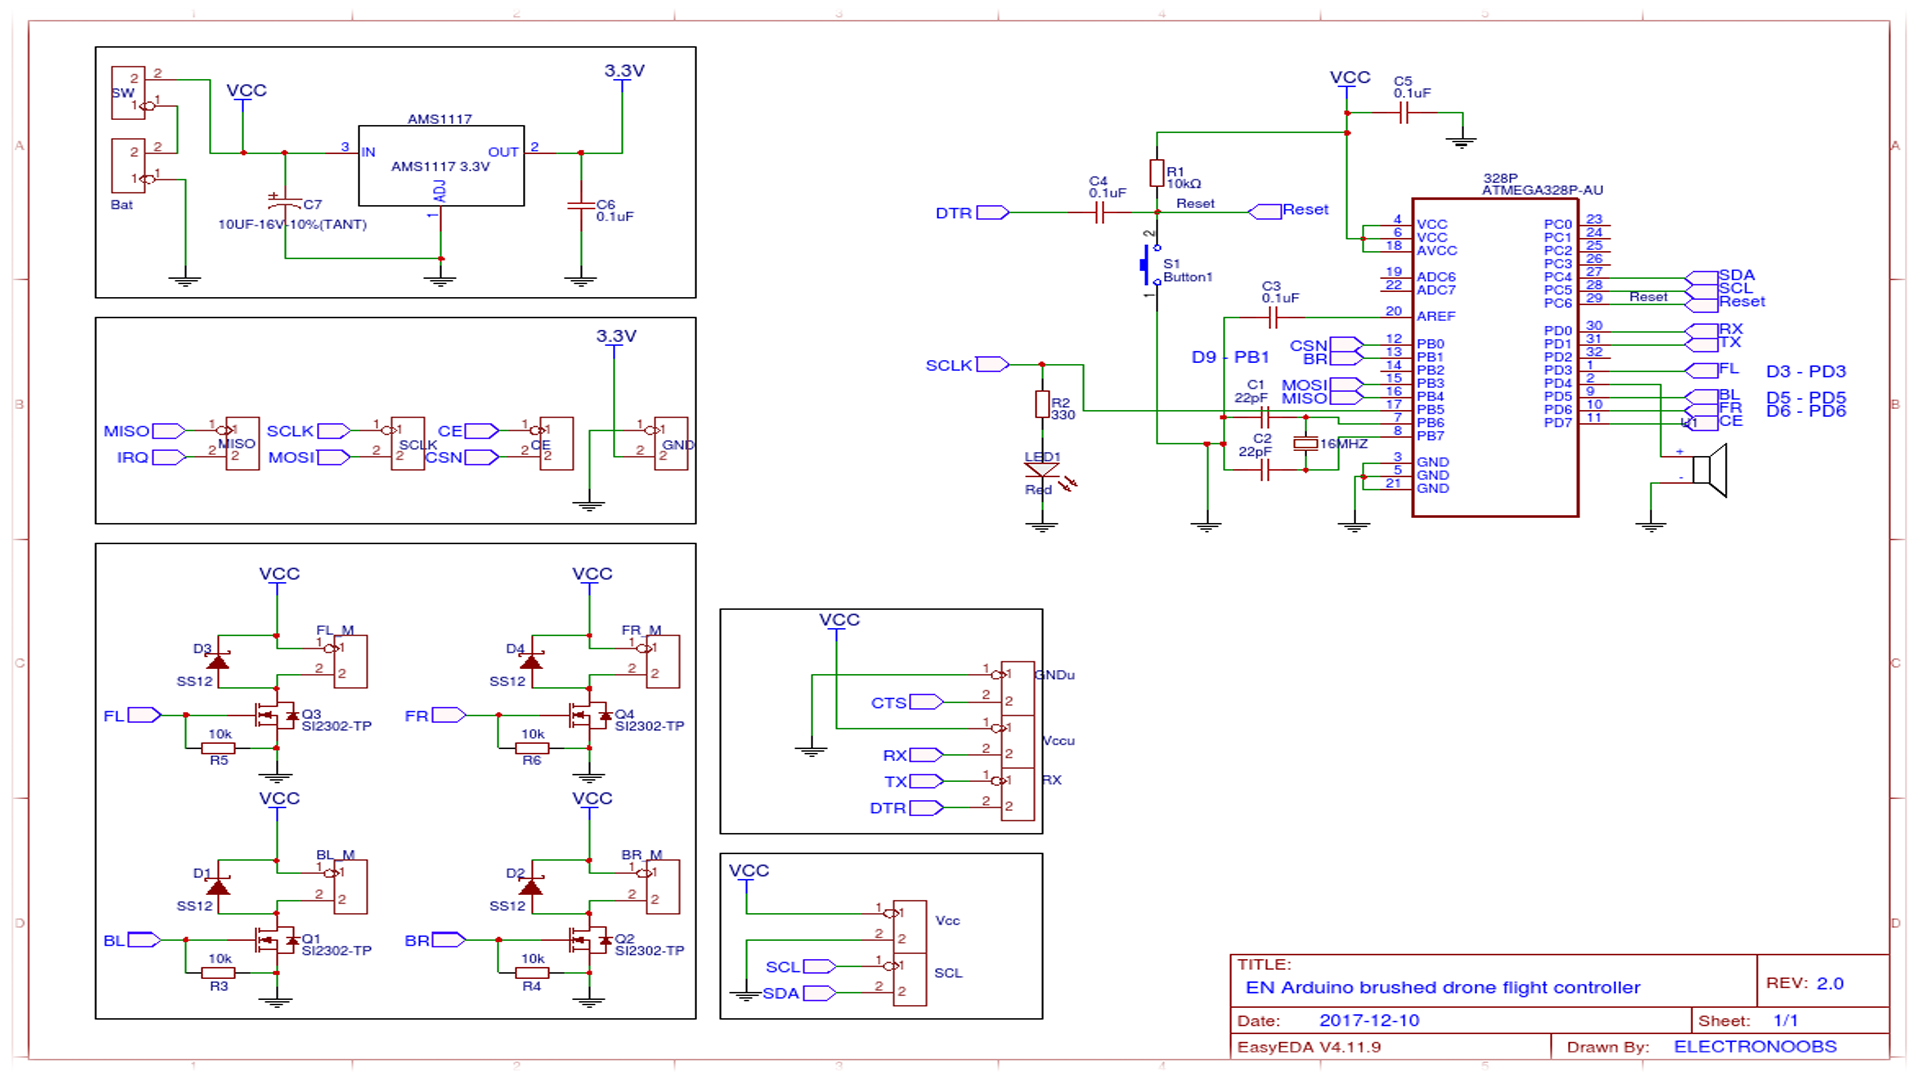 Brushed drone arduino schematic nano pro mini